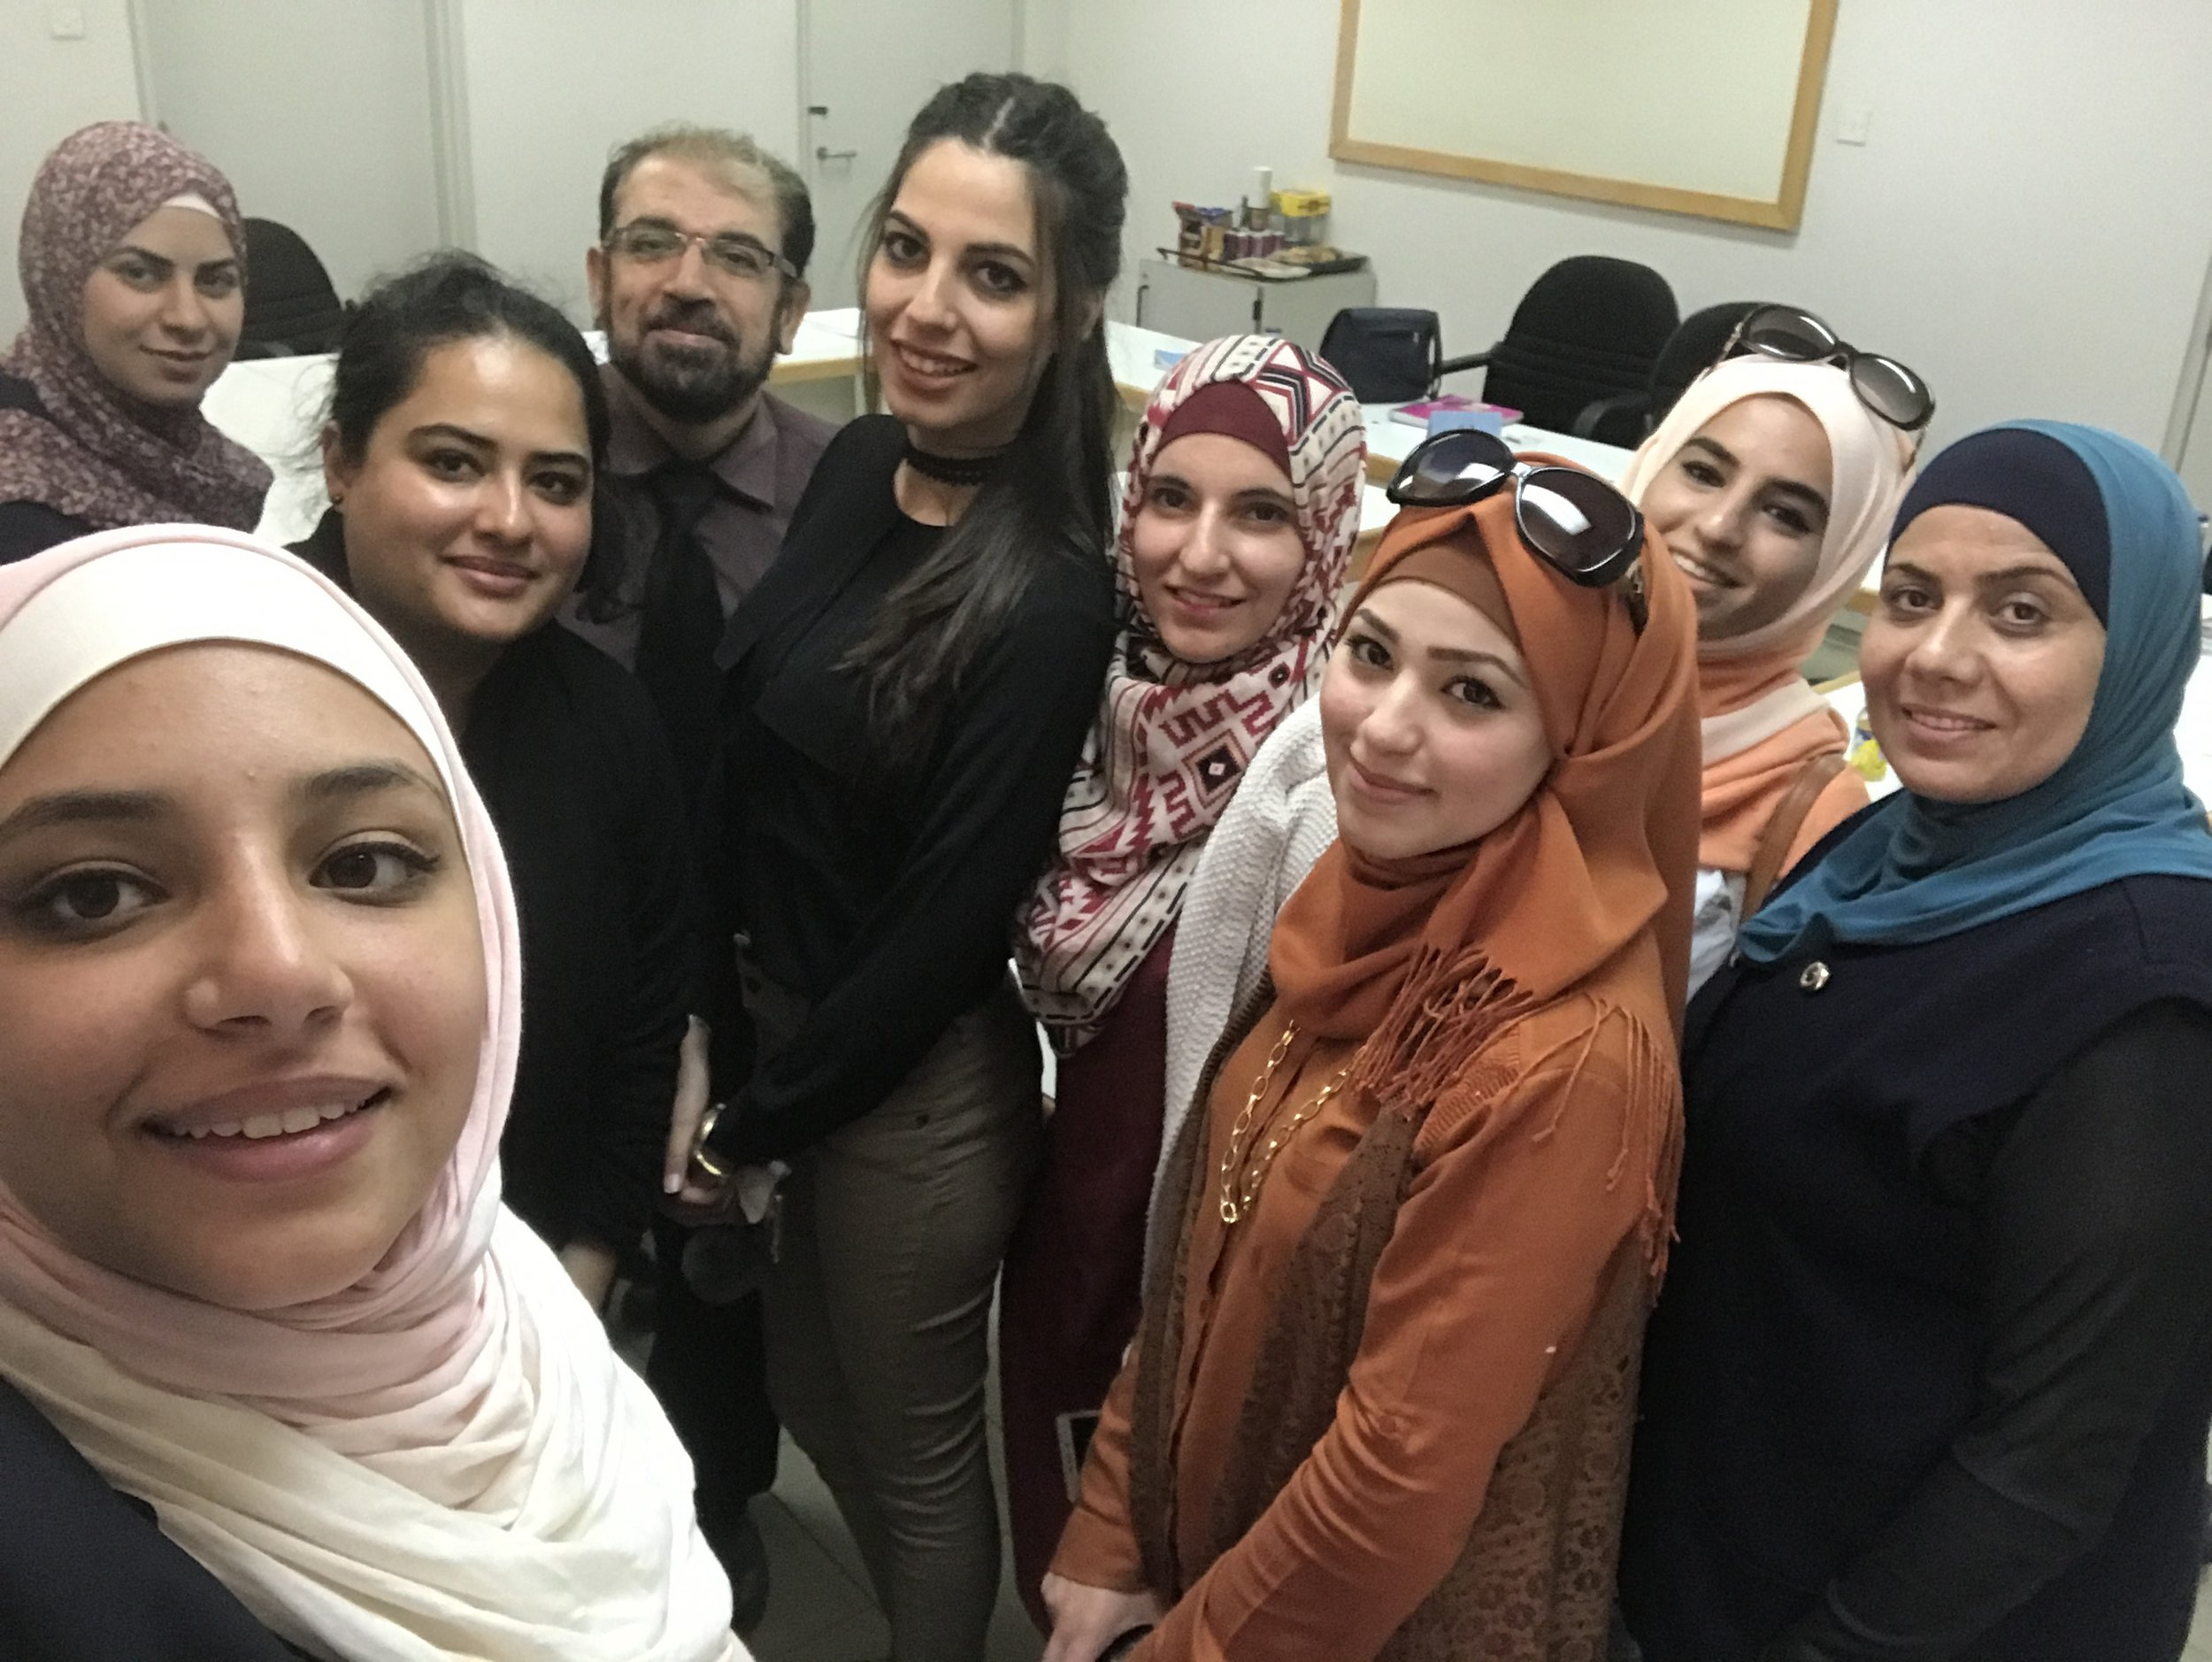 Posing for a casual selfie with the students after the focus group.